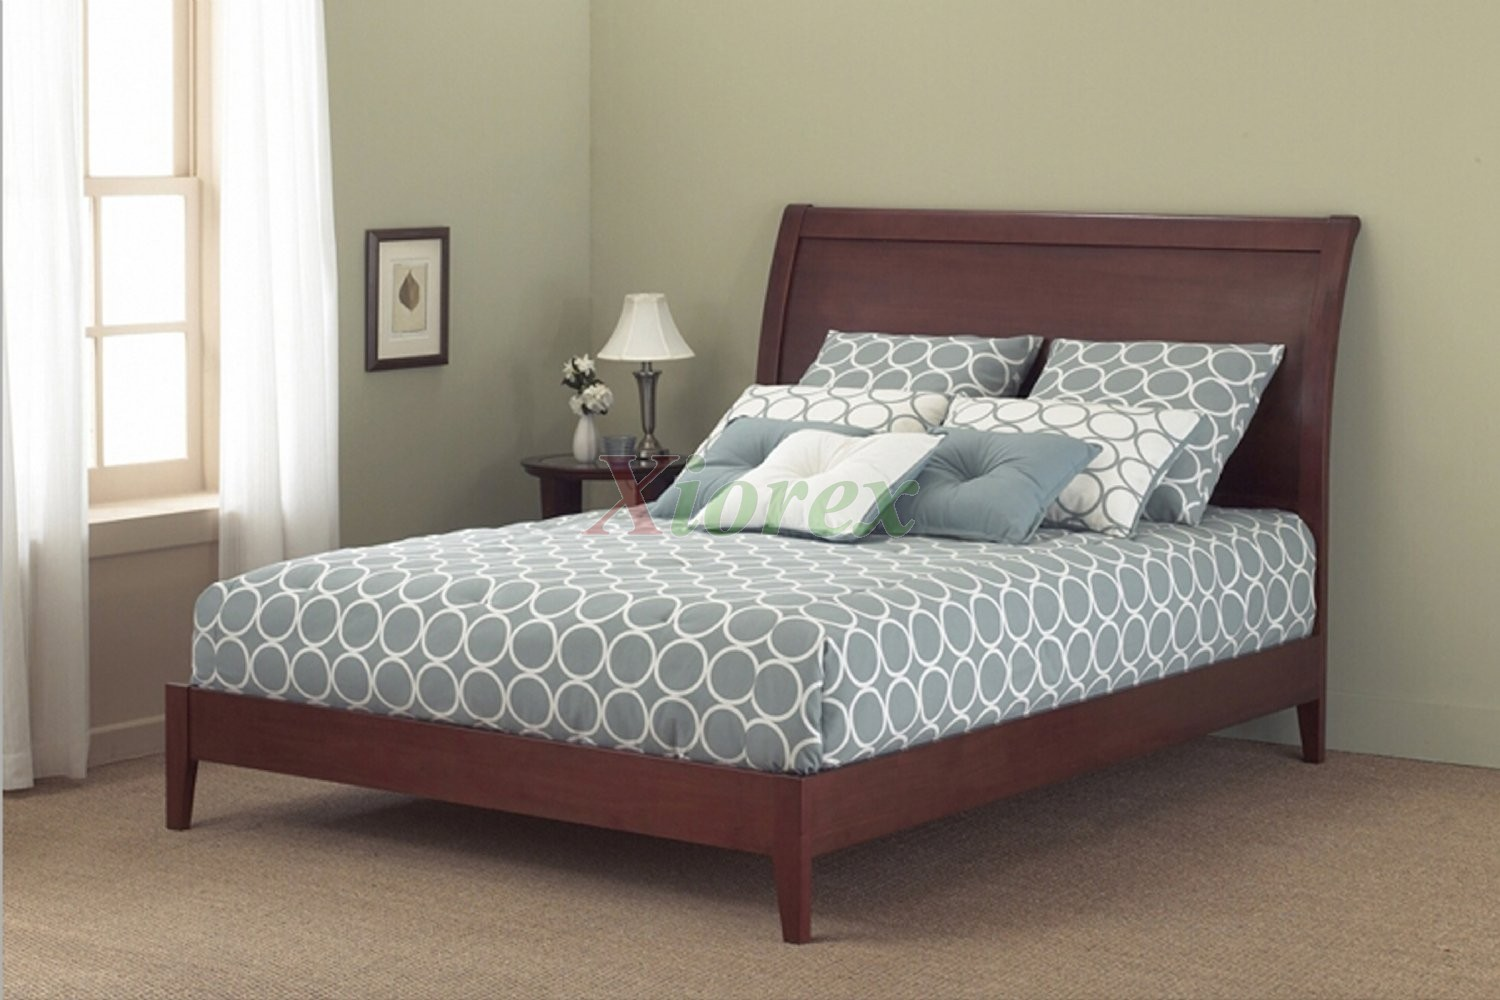 Java platform bed contemporary bed in mahogany black finish xiorex - Benefits of contemporary queen bed ...